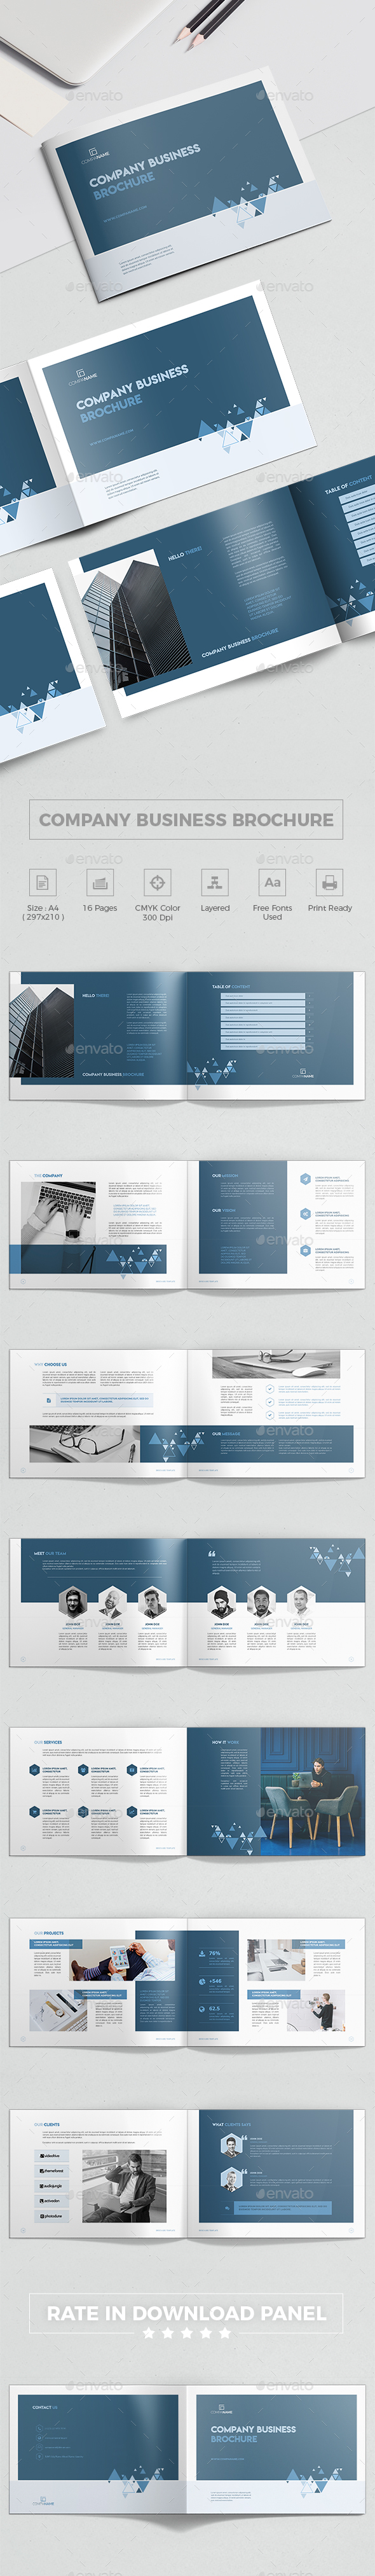 Company Business Landscape Brochure - Corporate Brochures